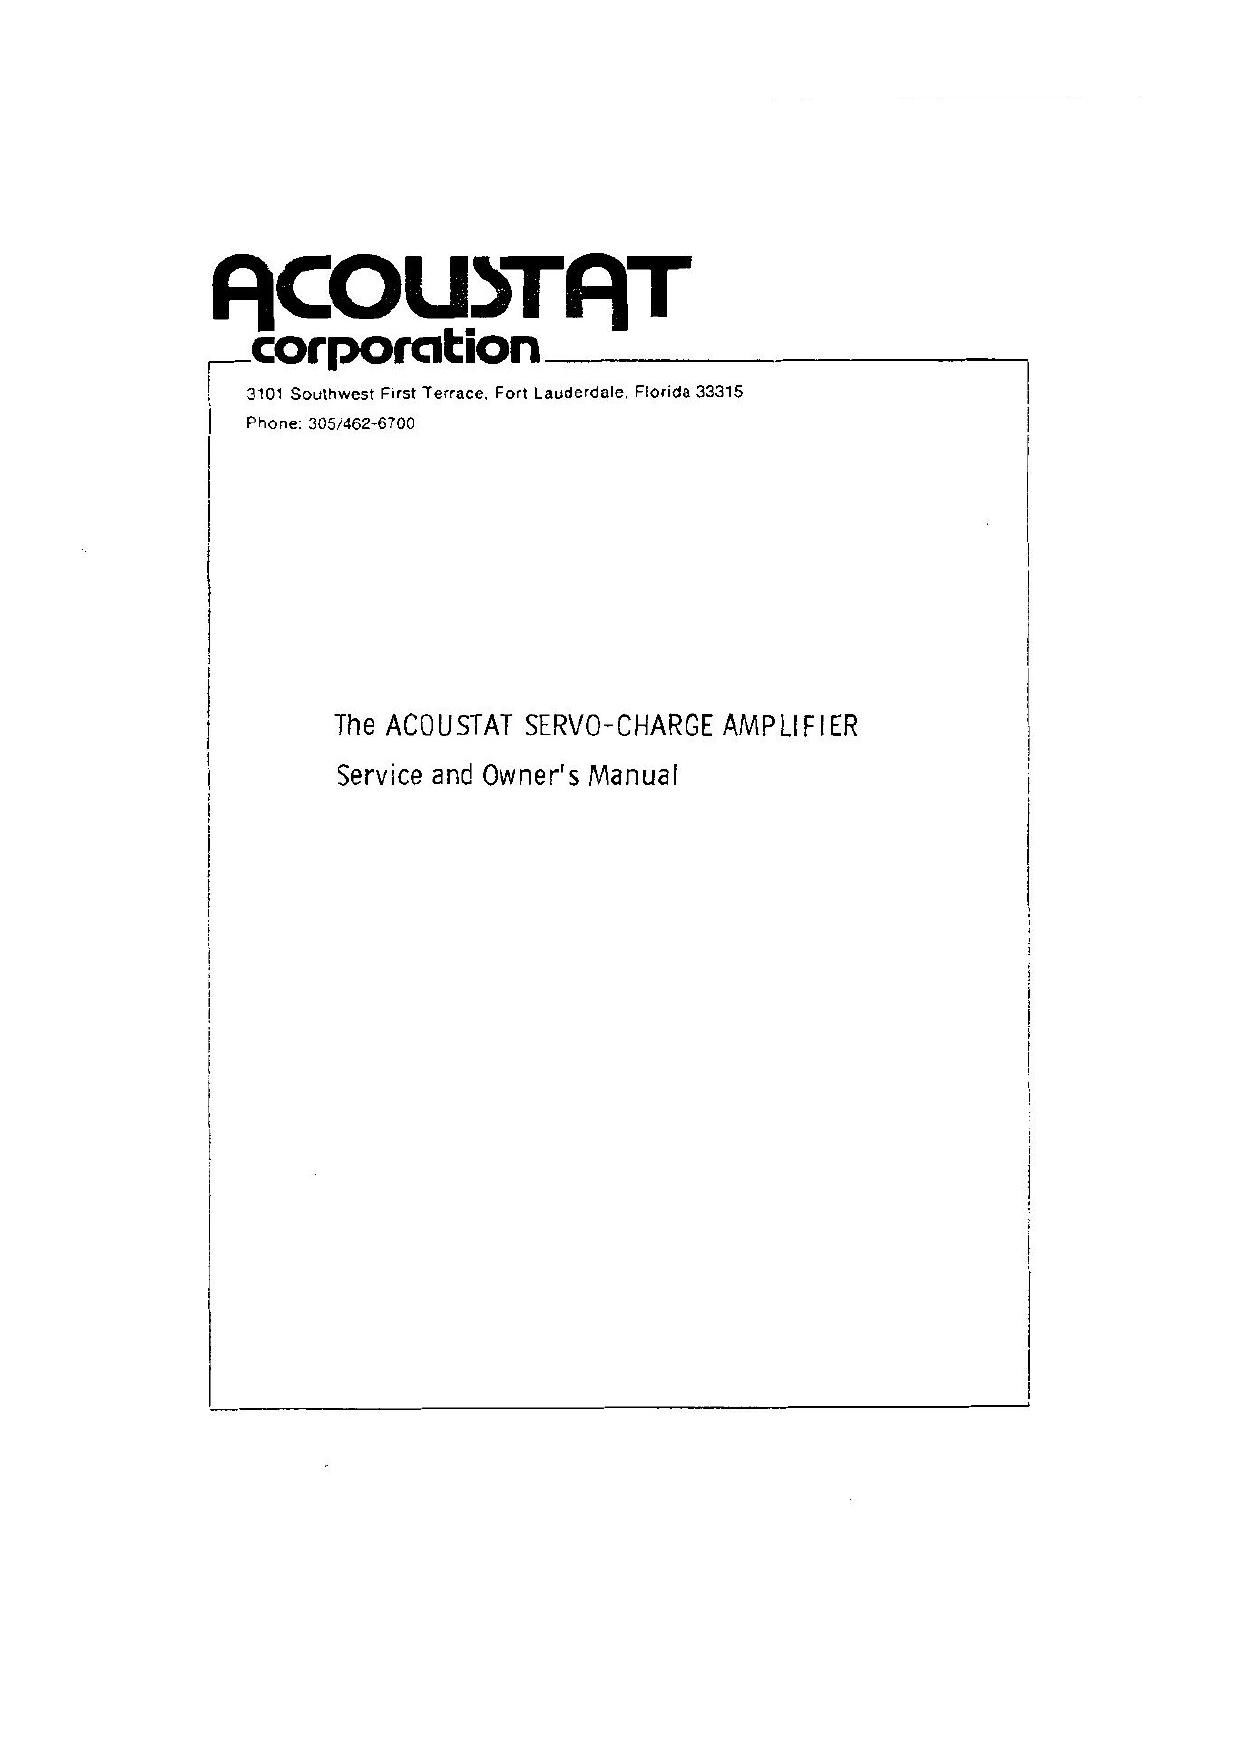 Acoustat X Owners Manual